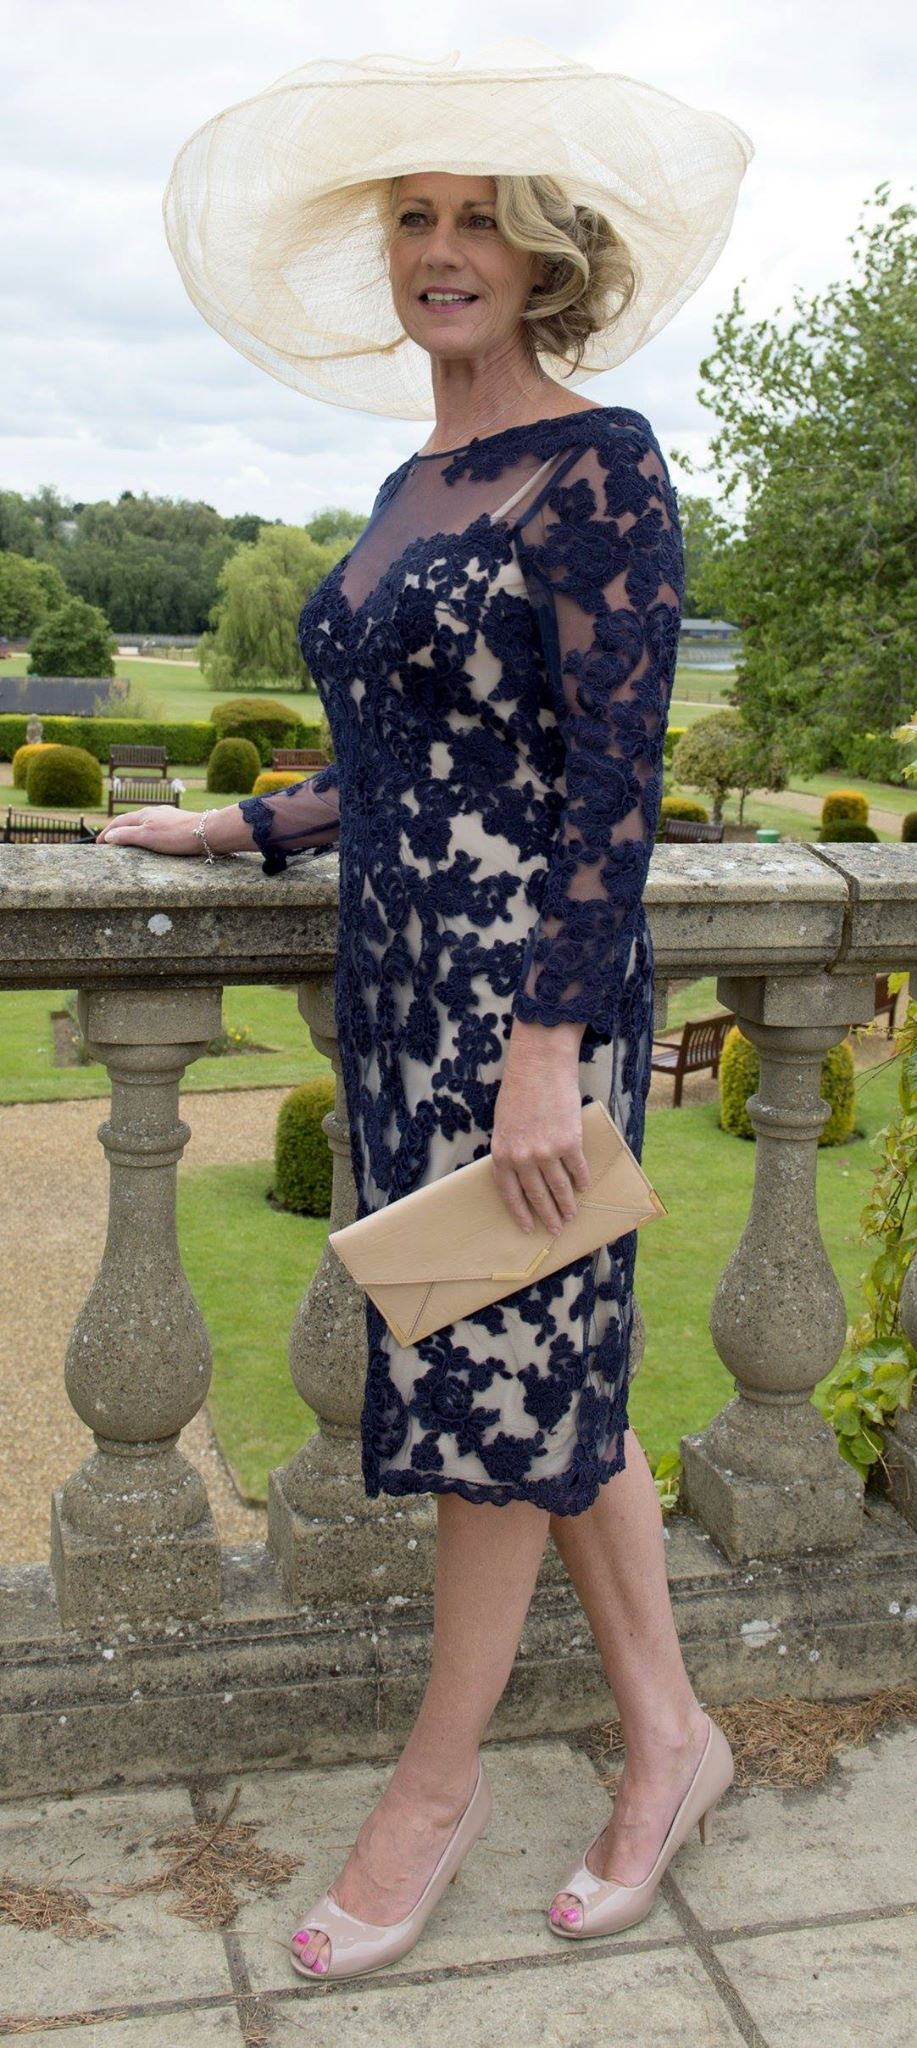 1dff7550818e7 Navy/Nude overlay - Mother of the Bride Dress! Beautiful - available at  www.frocks.co.uk